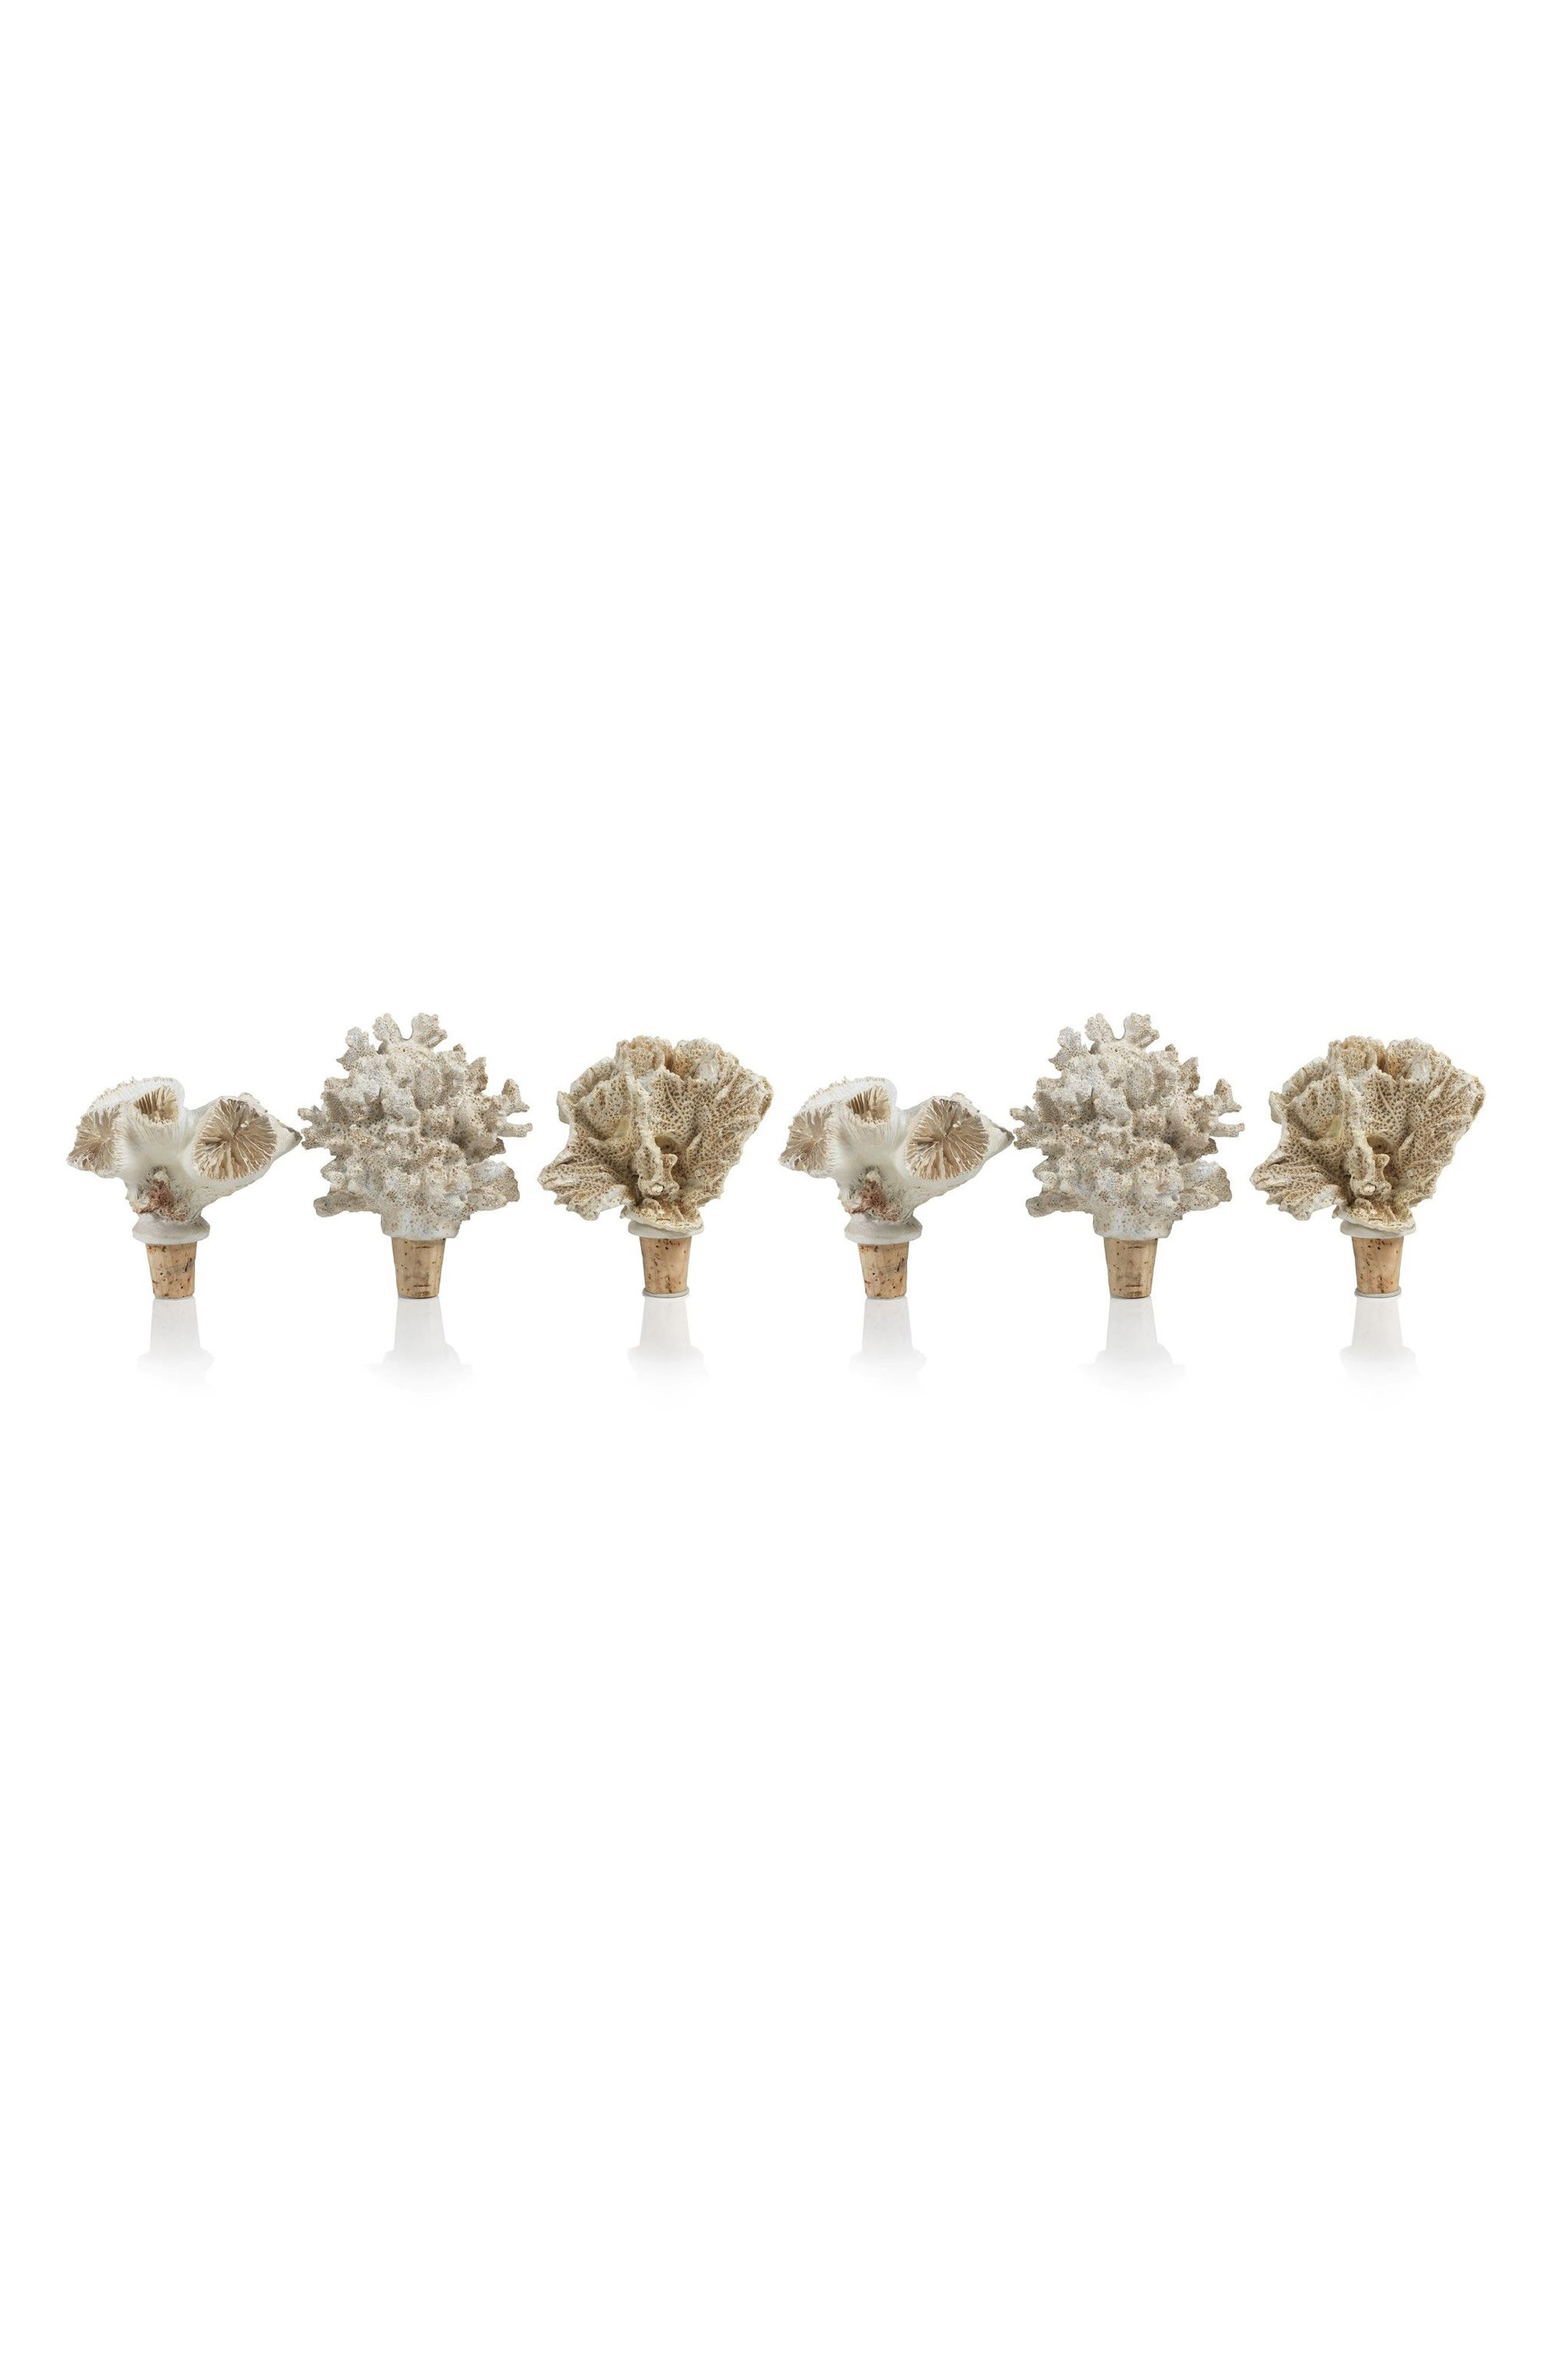 Sea Coral Set of 6 Bottle Stoppers,                             Main thumbnail 1, color,                             Off-White